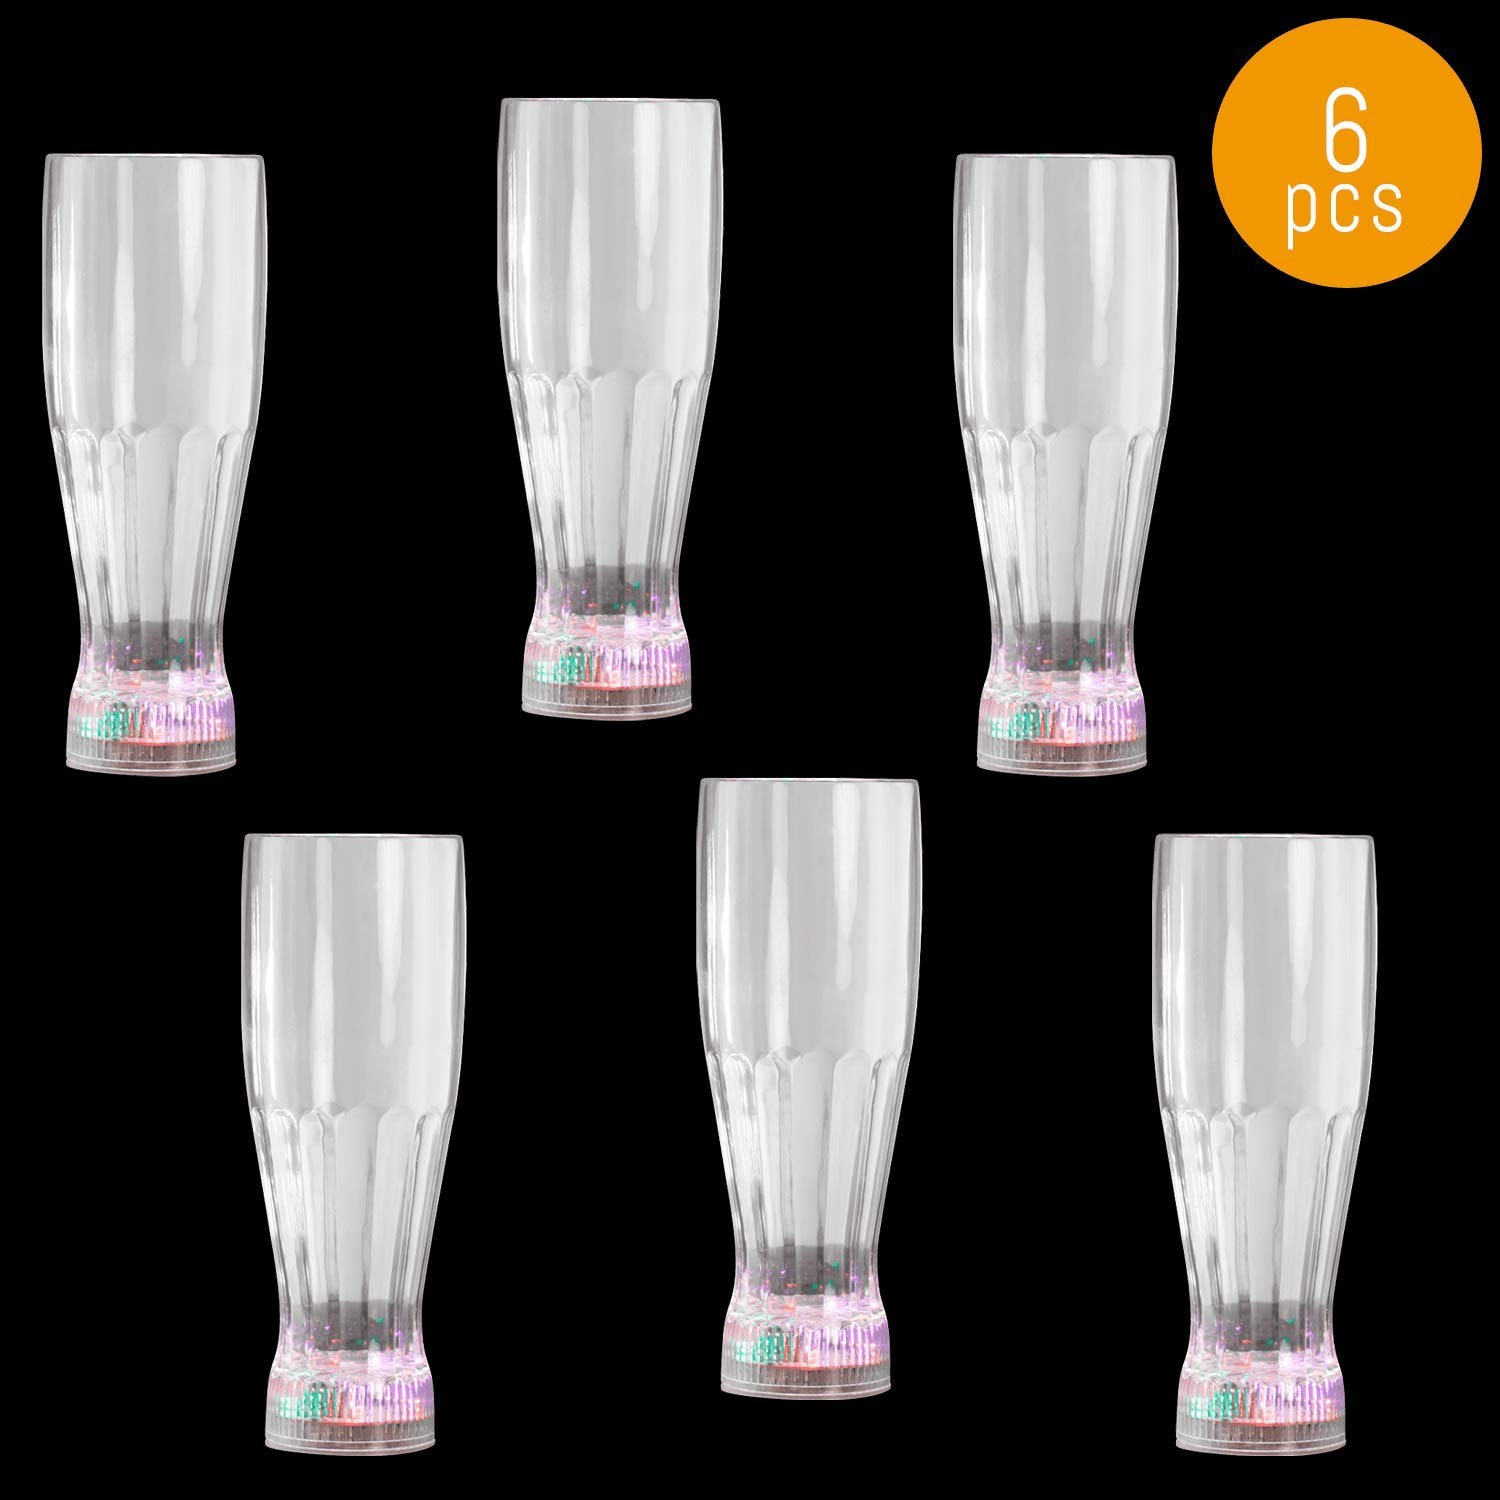 Lumistick LED Flashing Pilsner Glass with Freezable Base - Light Up Drinkware Multicolor Fun Drinking Tumblers - Night Party Glowing Beer Drinker Glass (6 Glasses)